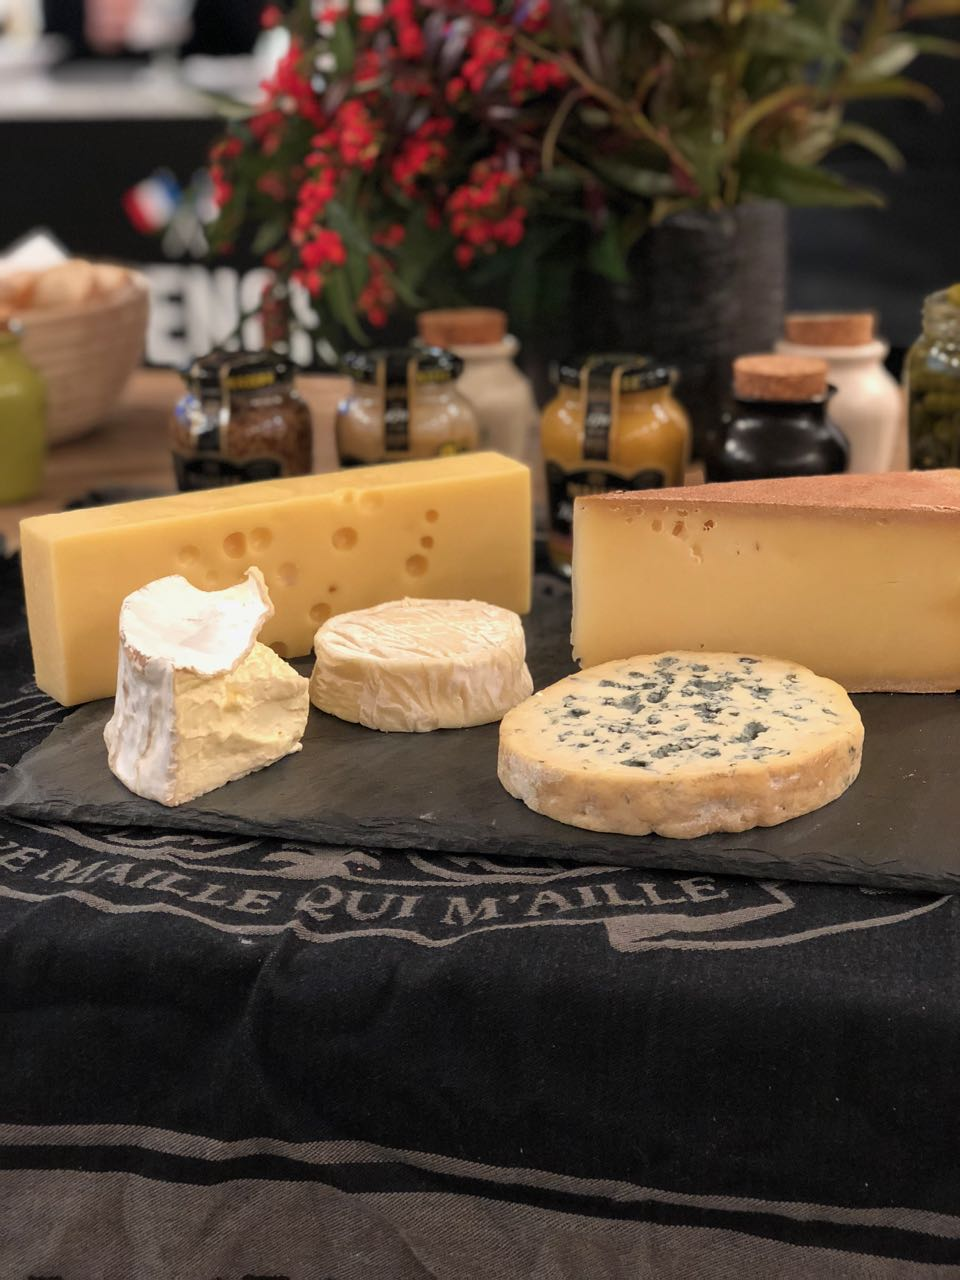 Impress Fromage Lovers With the Best Cheese Pairings This Season